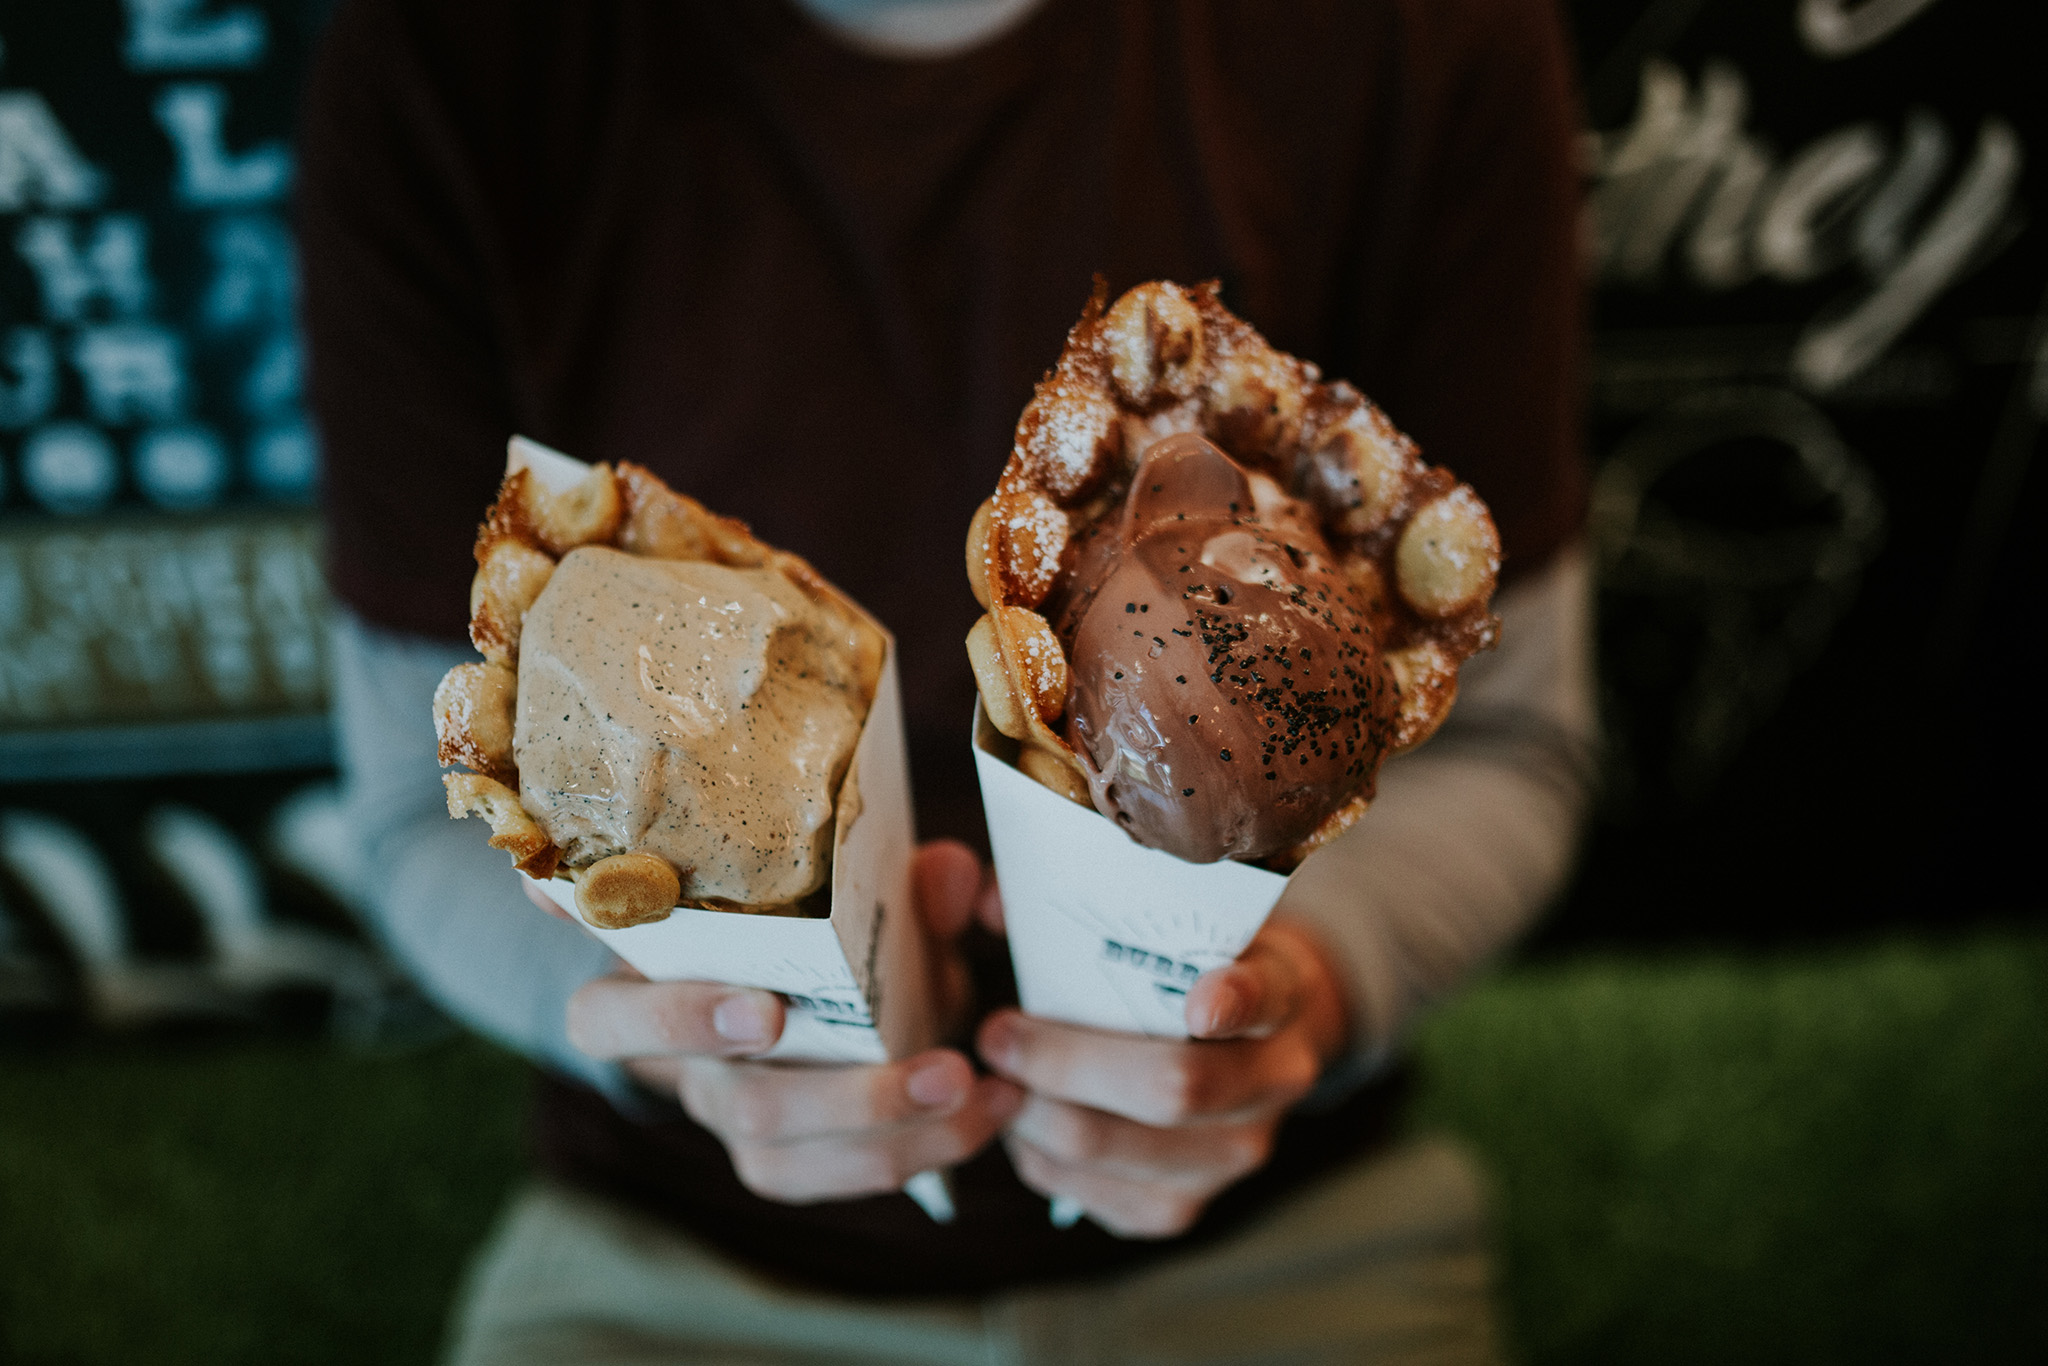 August 23: Milkcraft. Liquid nitrogen ice cream, made to order, served in waffle cones- literal, soft, bubbly and warm waffles. It is heaven for the lactose and gluten tolerant.